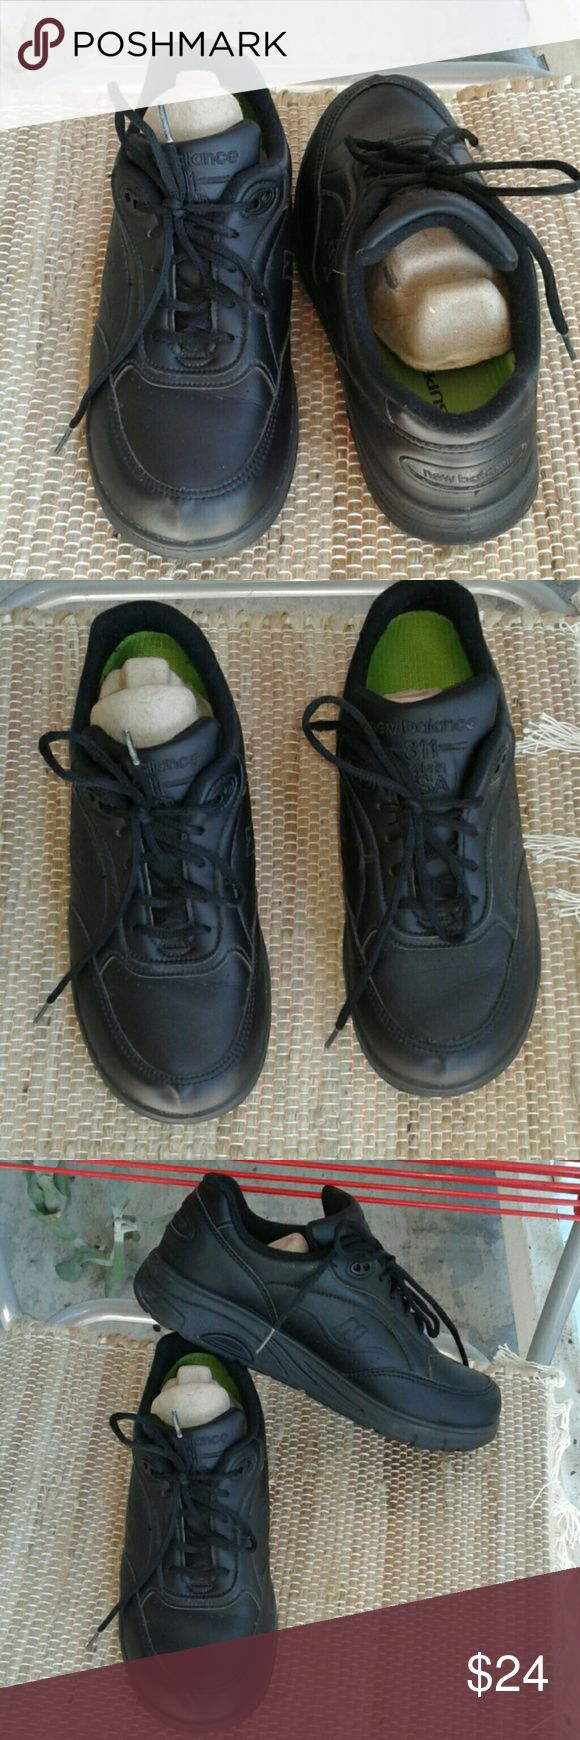 NEW BALANCE 811 WALKING COMFORT ATHLETIC SNEAKERS SUPER FEET EDITION, ROLLER BAR SOLES,  GREAT PRE-LOVED CONDITION, NEW BALANCE Shoes Sneakers